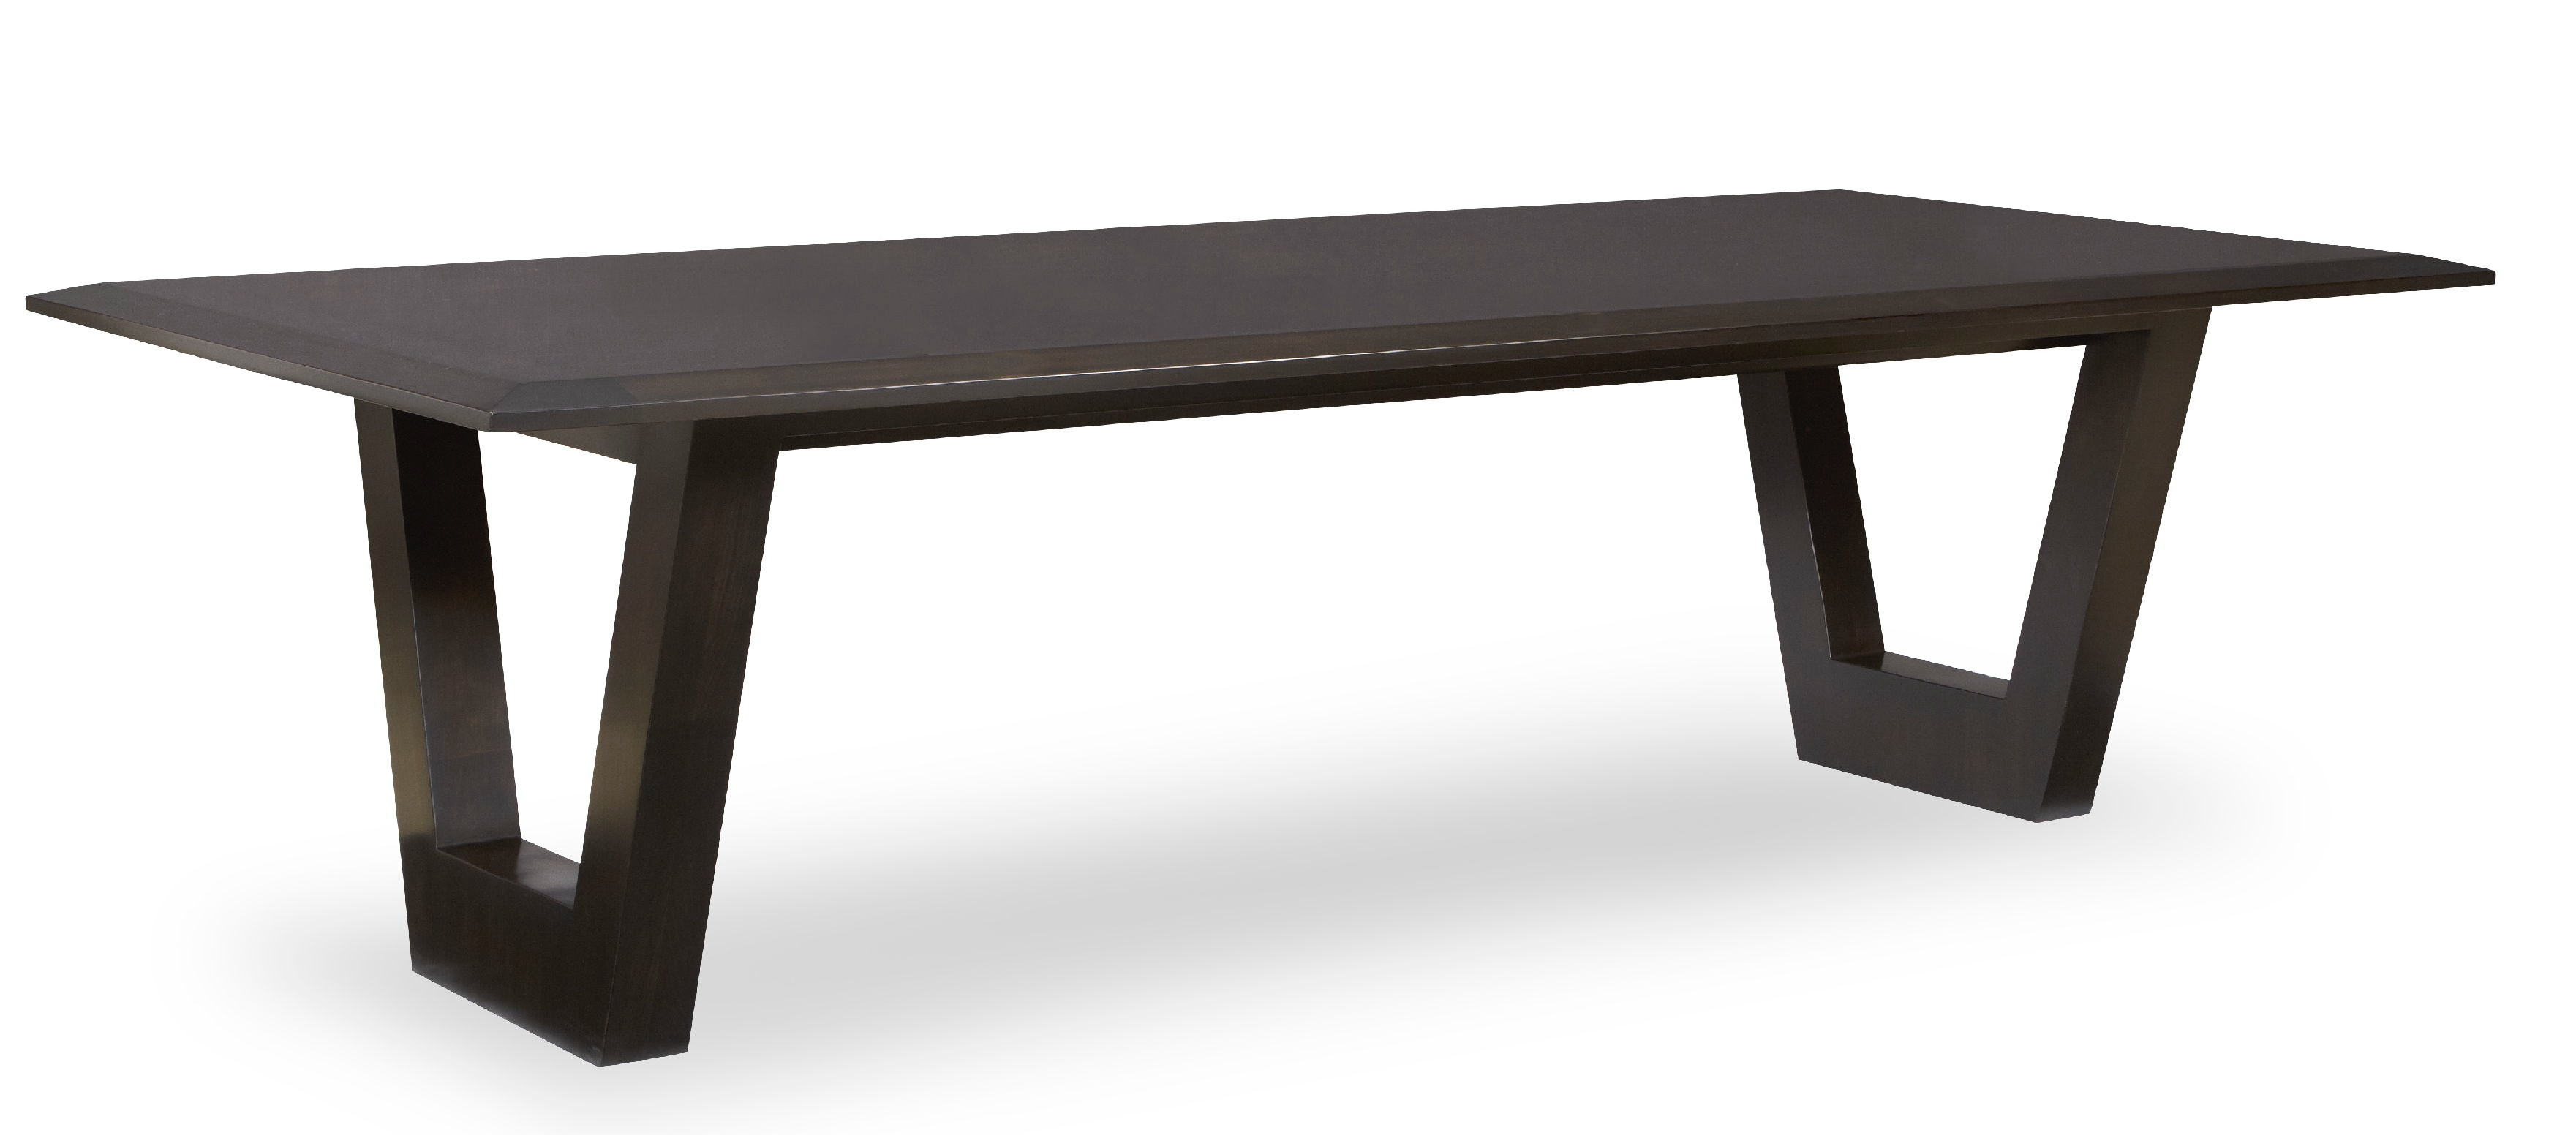 Chaddock Crestwood Dining Table 1374 20